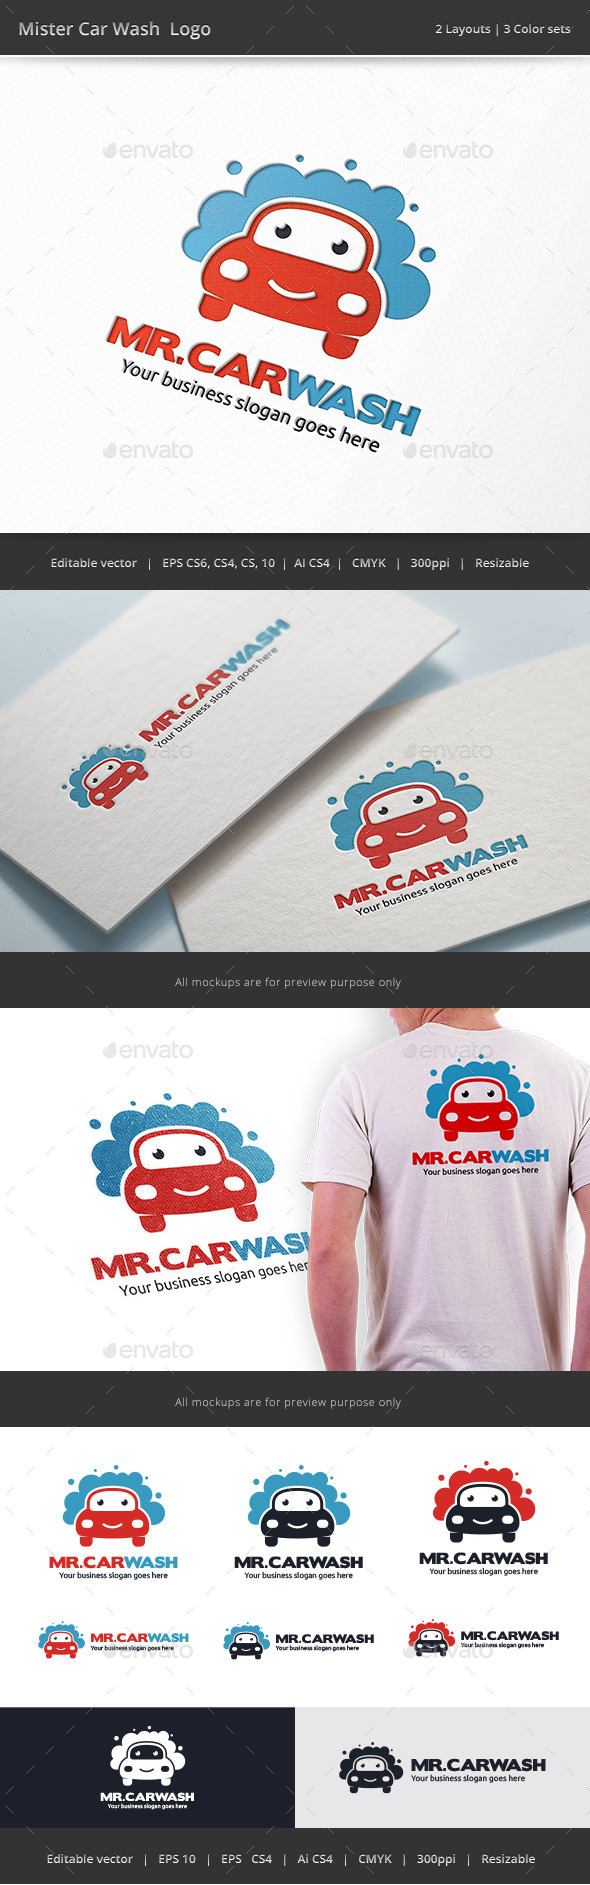 Mister Car Wash Logo